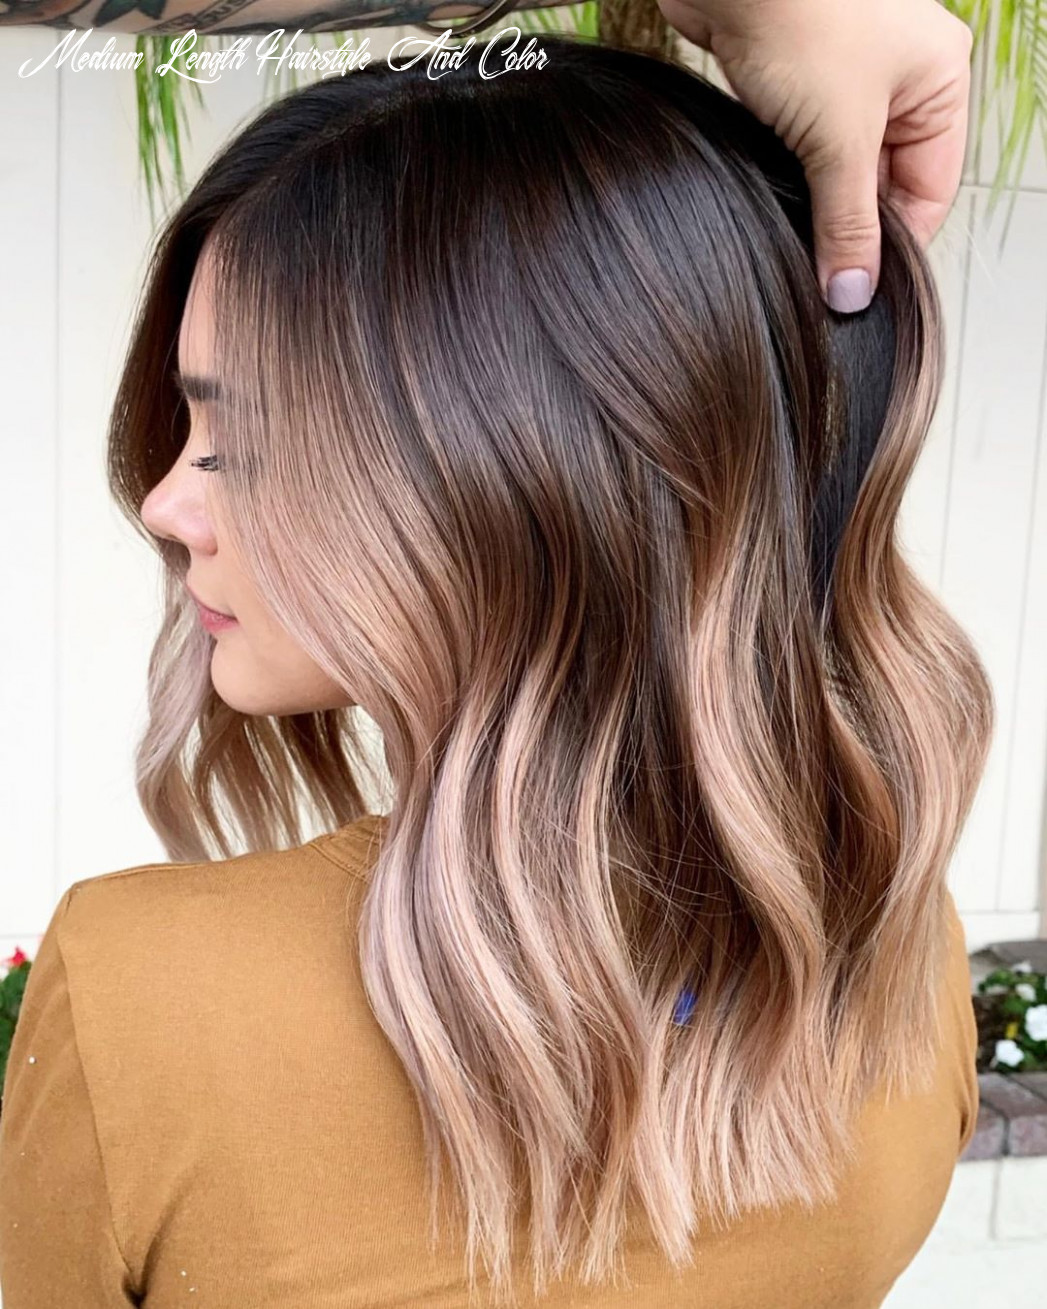 Best short ﹠ mediumlength hair color and style ideas for spring